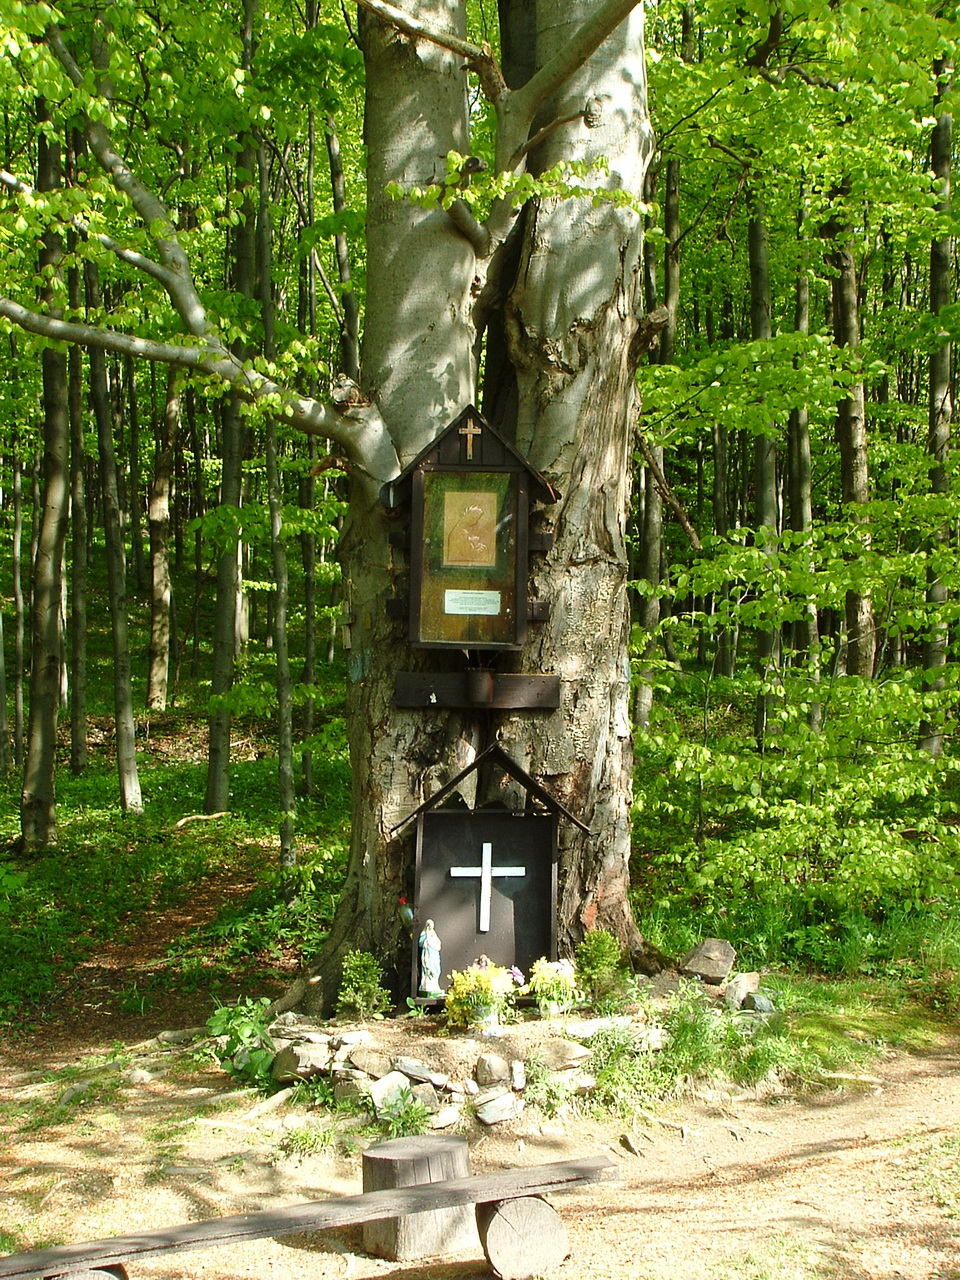 Mary-tree on the Faktor-rét Meadow